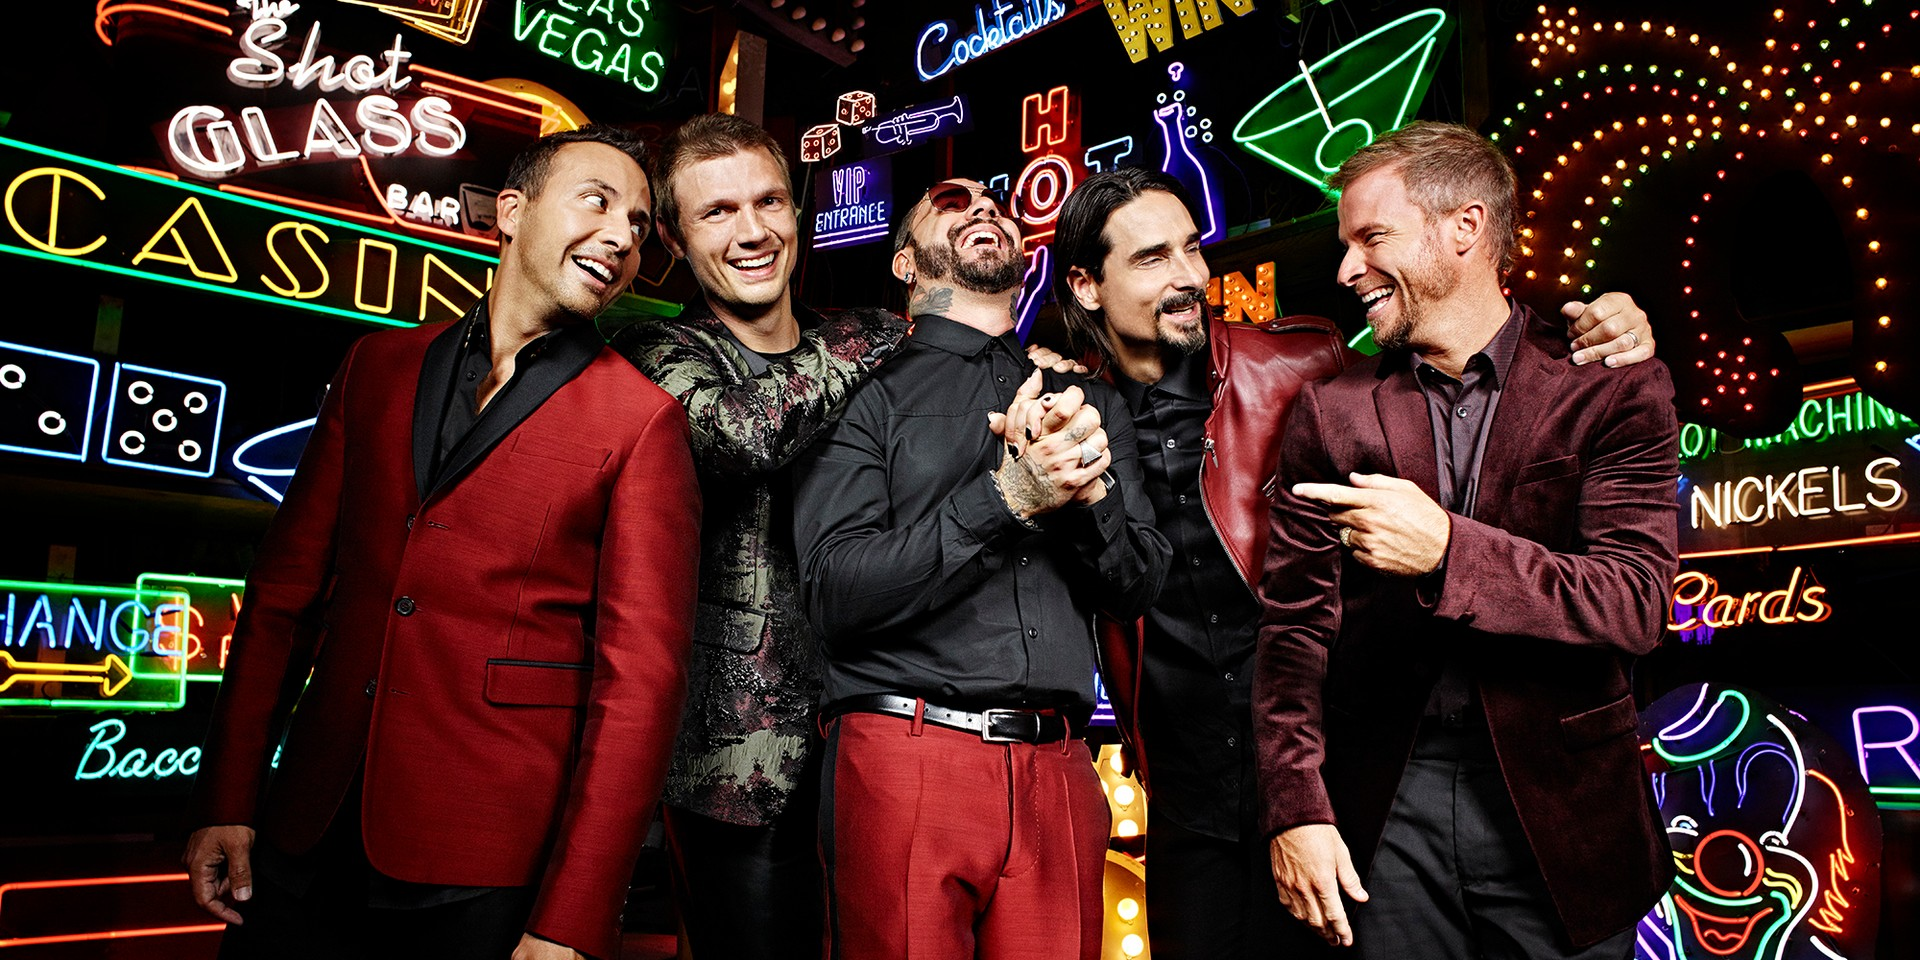 Backstreet Boys are headed back to Singapore